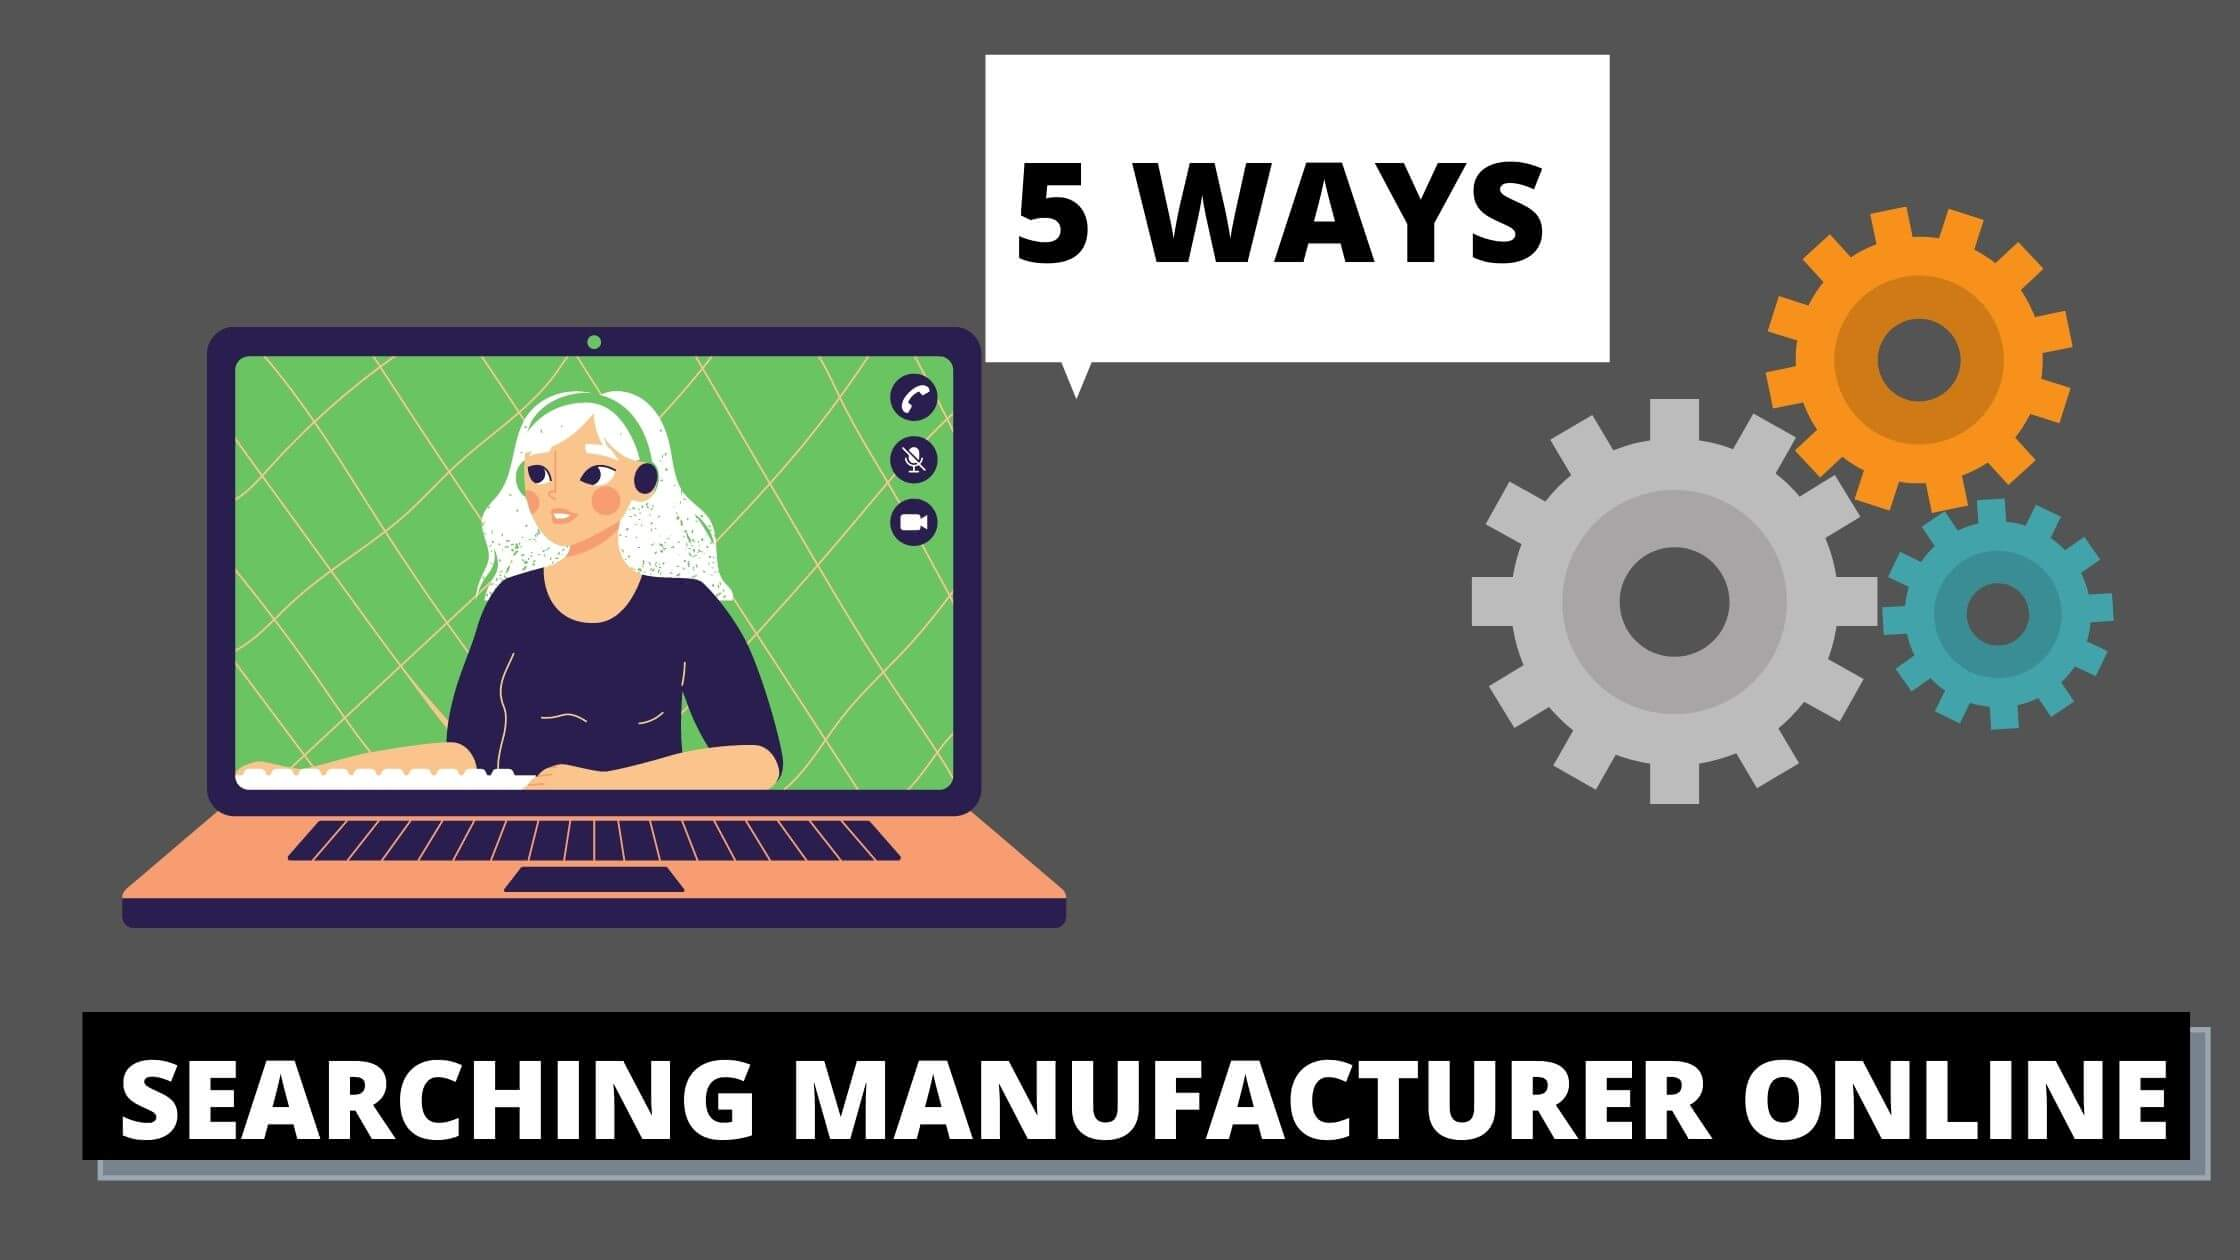 5 WAYS to searching Manufacturer online